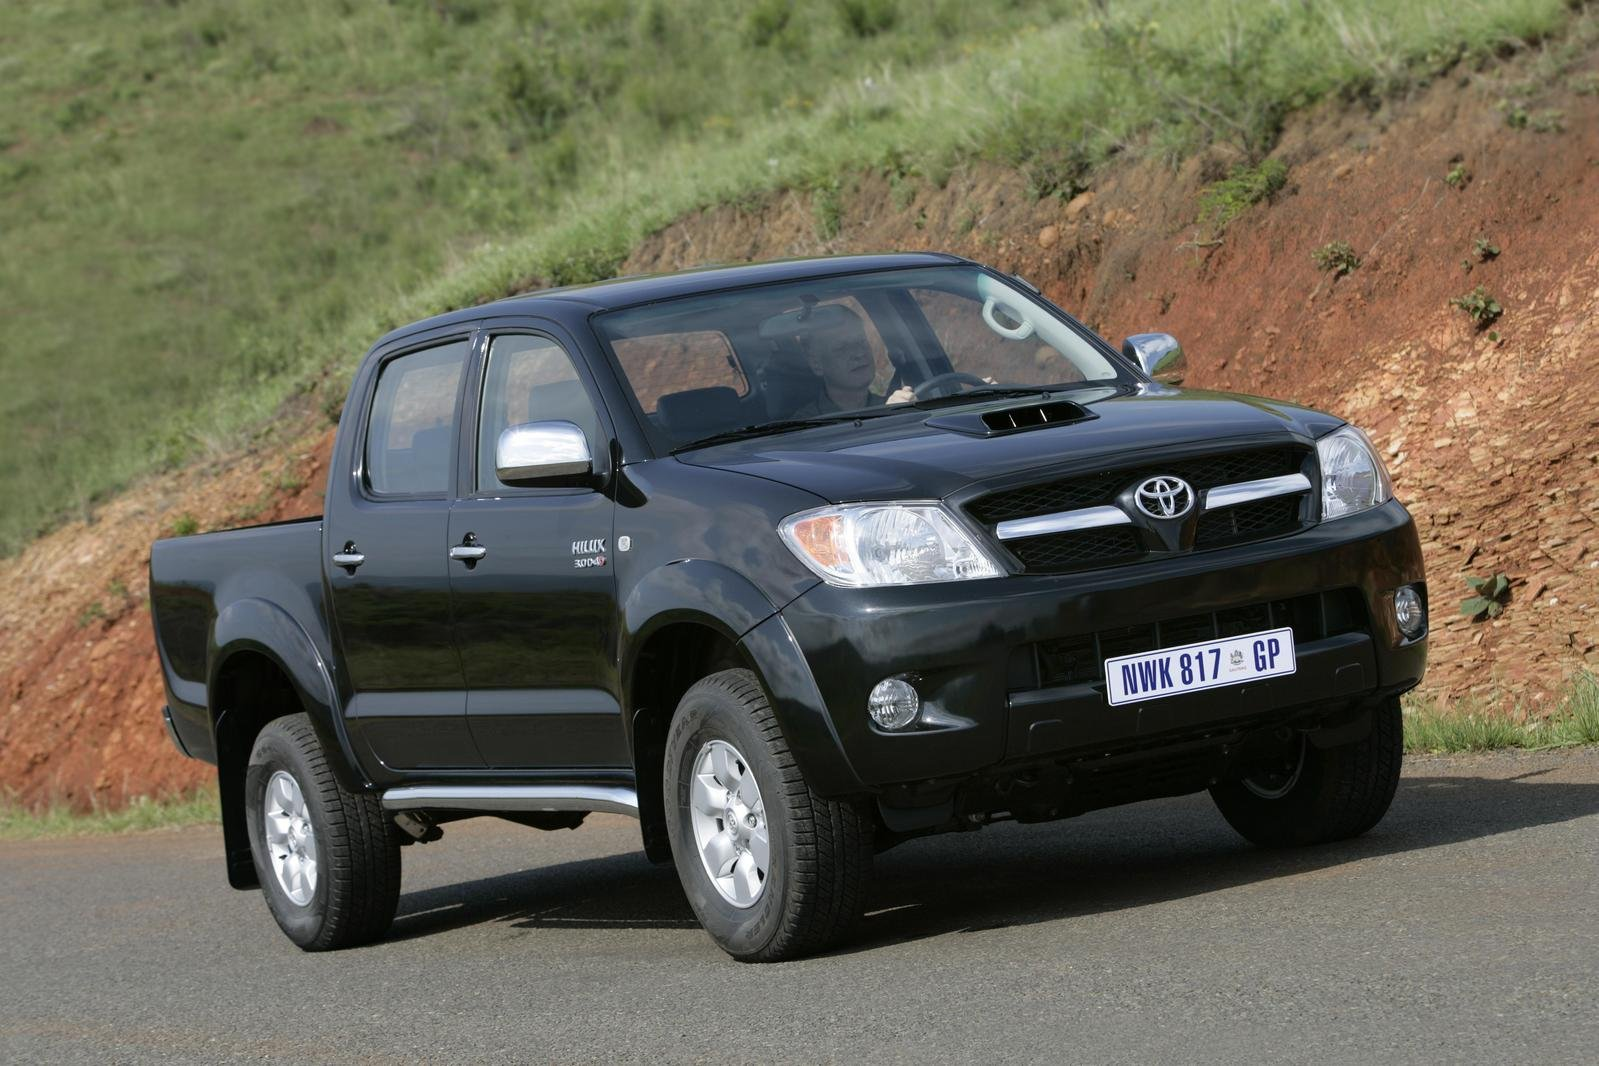 2007 toyota hilux picture 158008 car review top speed. Black Bedroom Furniture Sets. Home Design Ideas